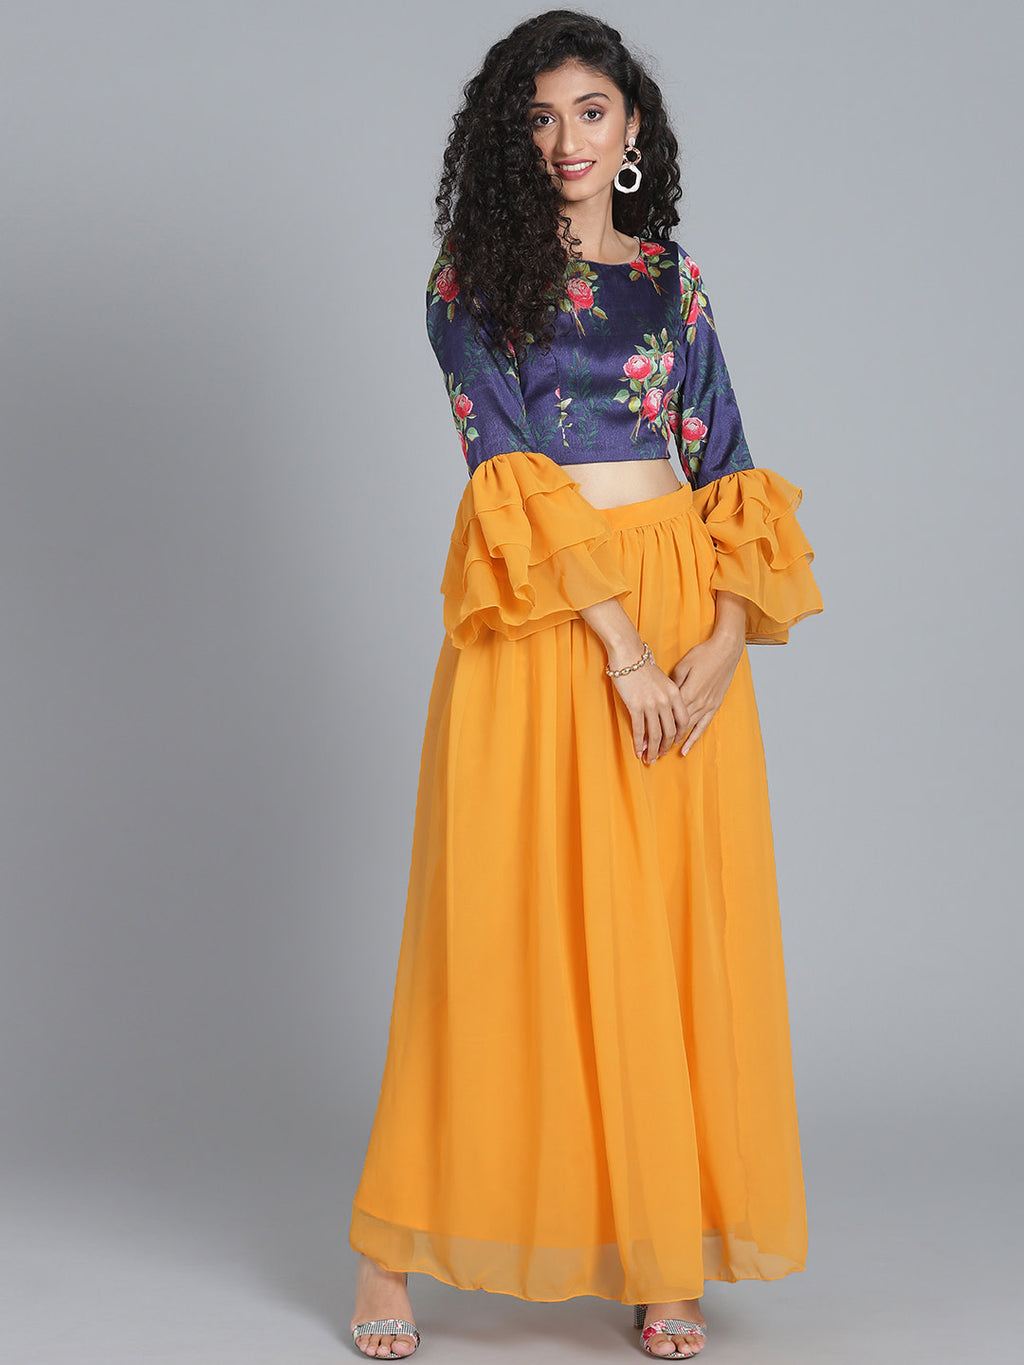 Navy Blue & Mustard Yellow Made to Measure Printed Lehenga with Blouse